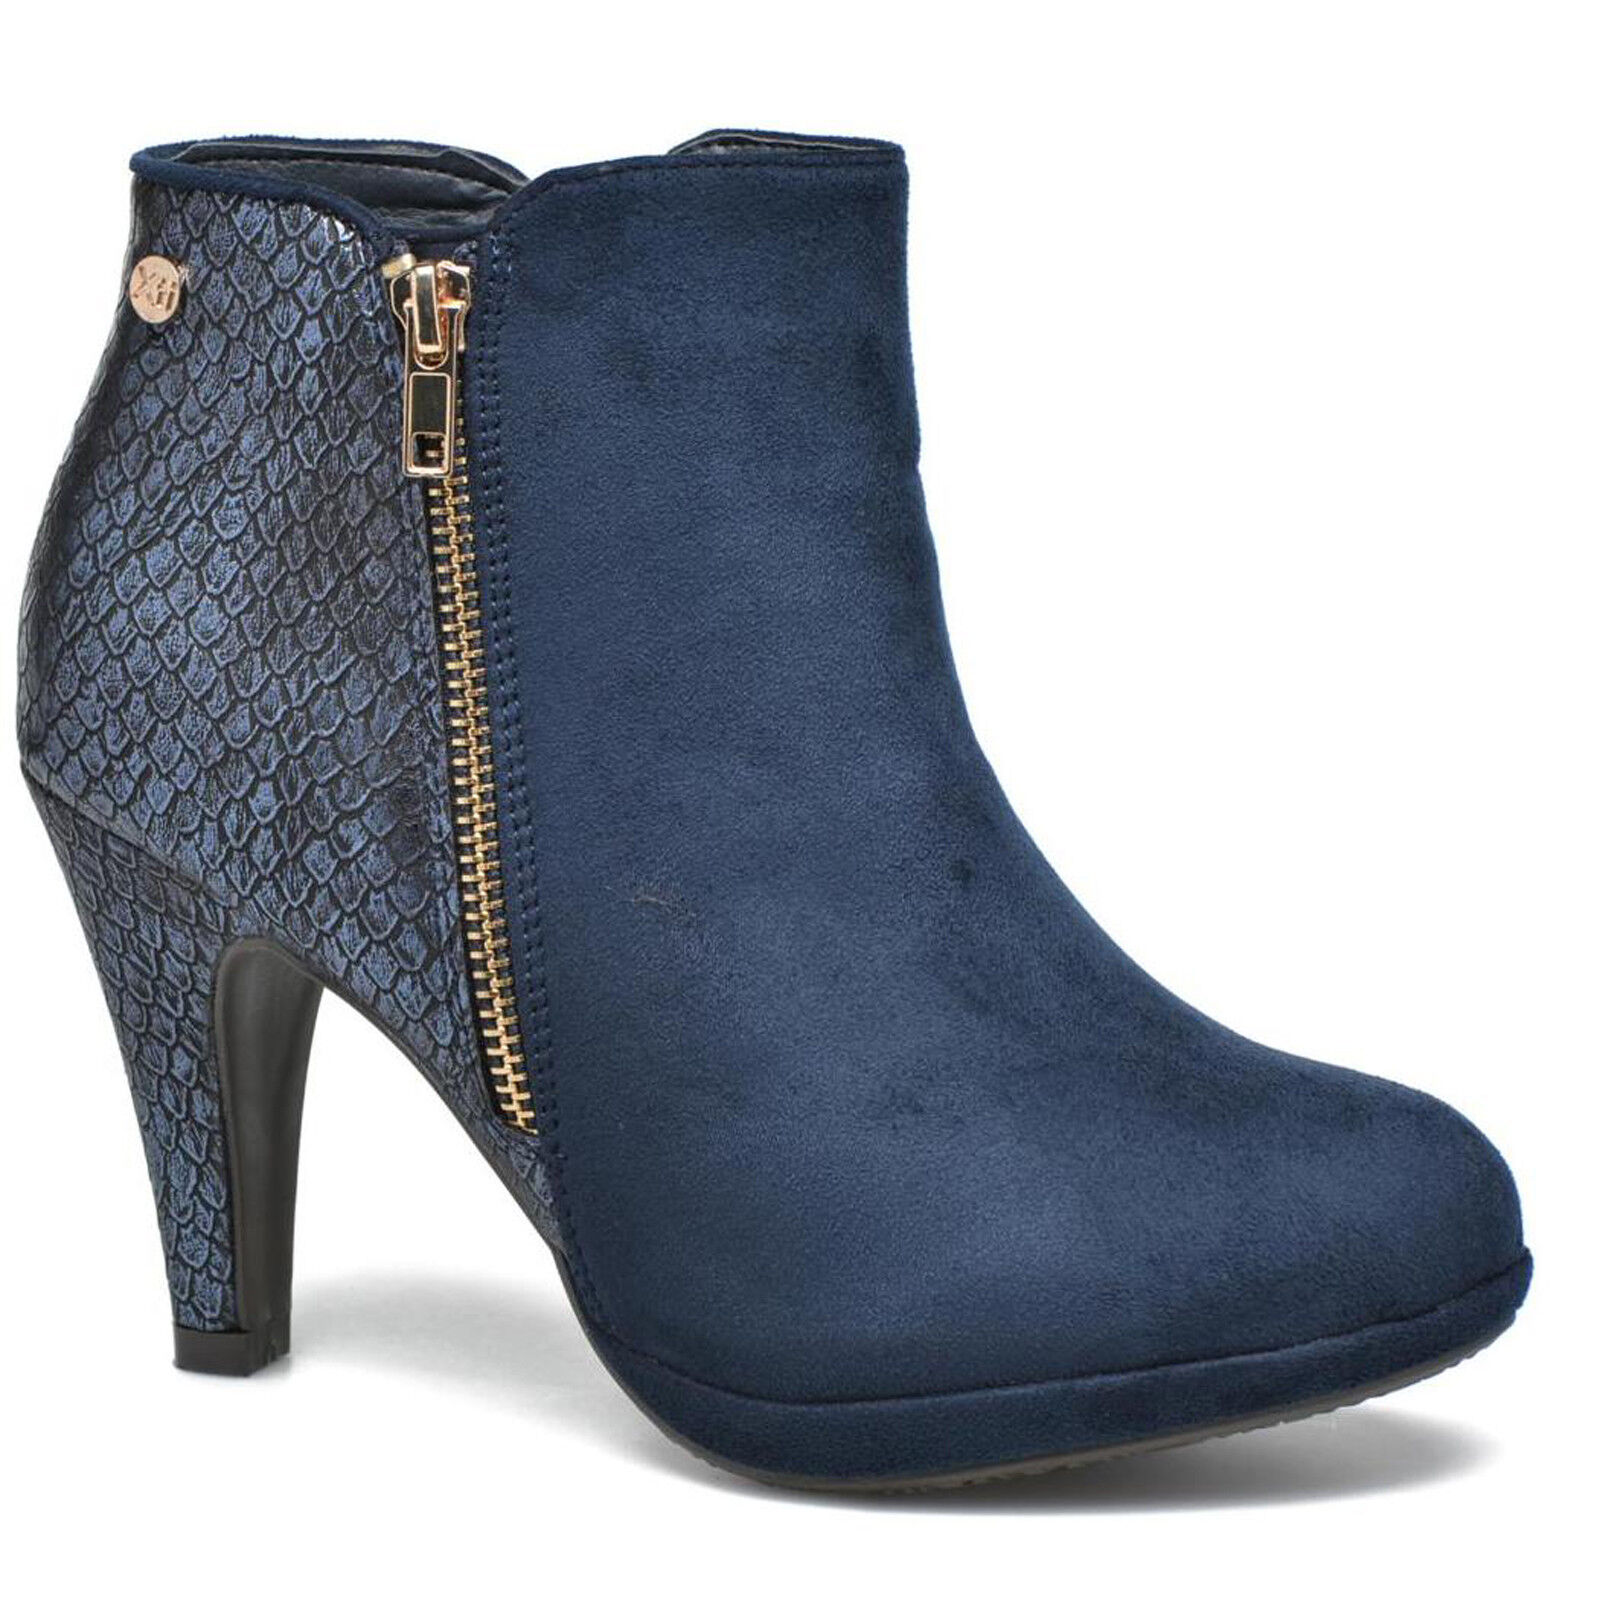 disponibile ☼ELEN☼ Bottines à talon - Xti - Ref  0843 0843 0843  prezzo ragionevole